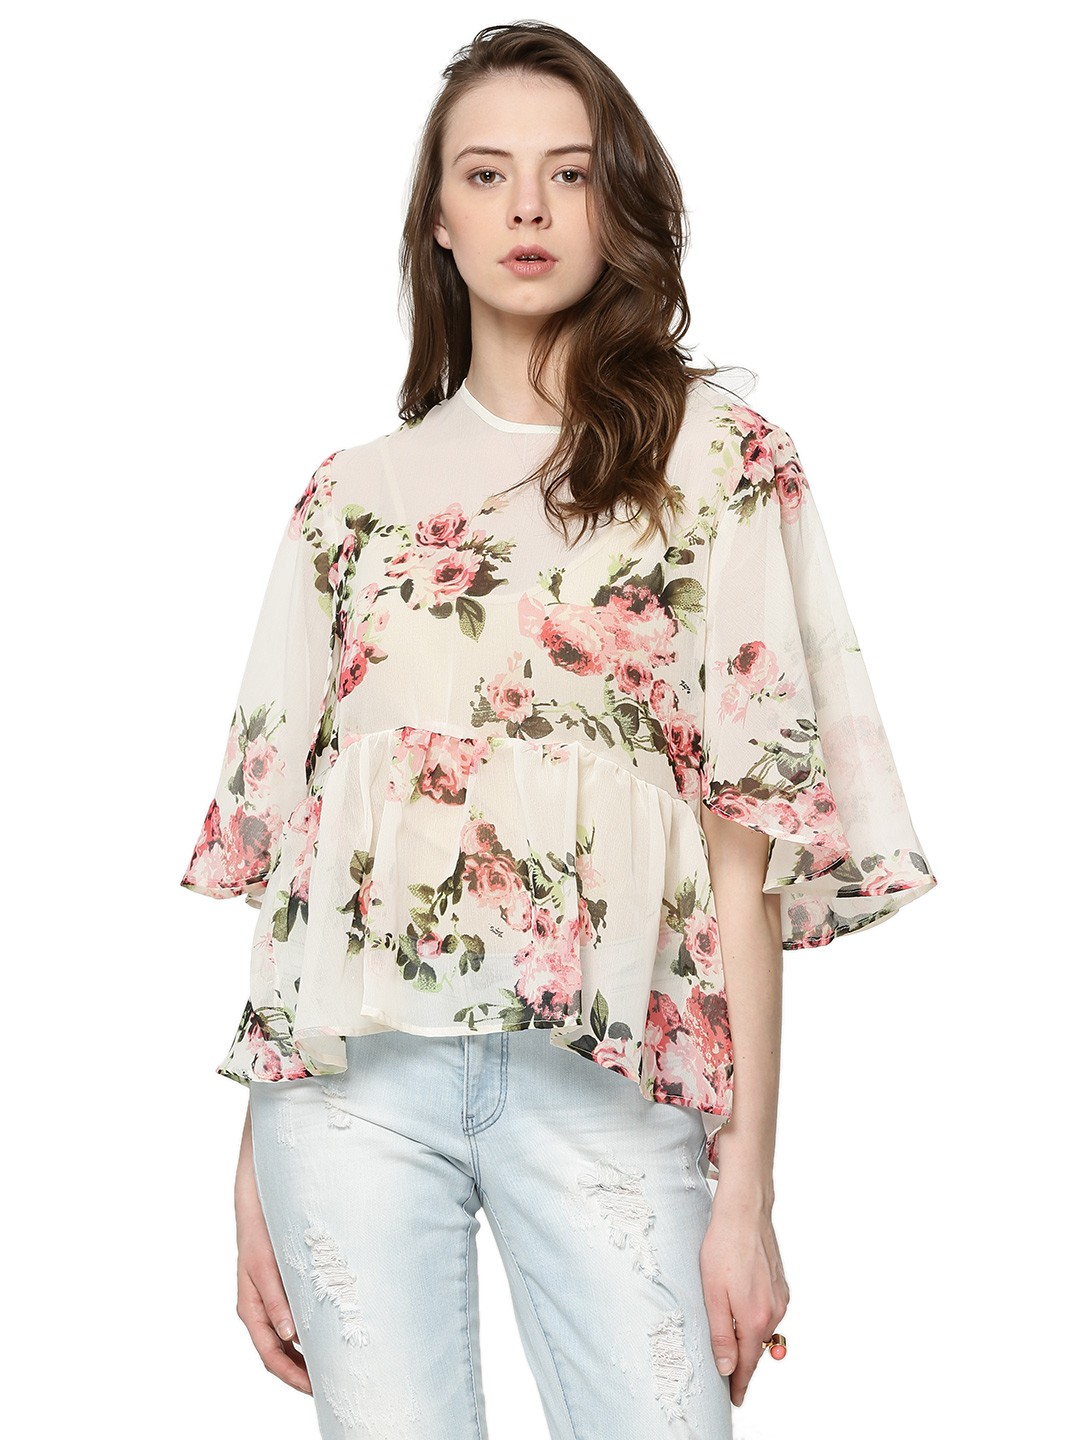 Buy RENA LOVE Floral Print Peplum Top For Women